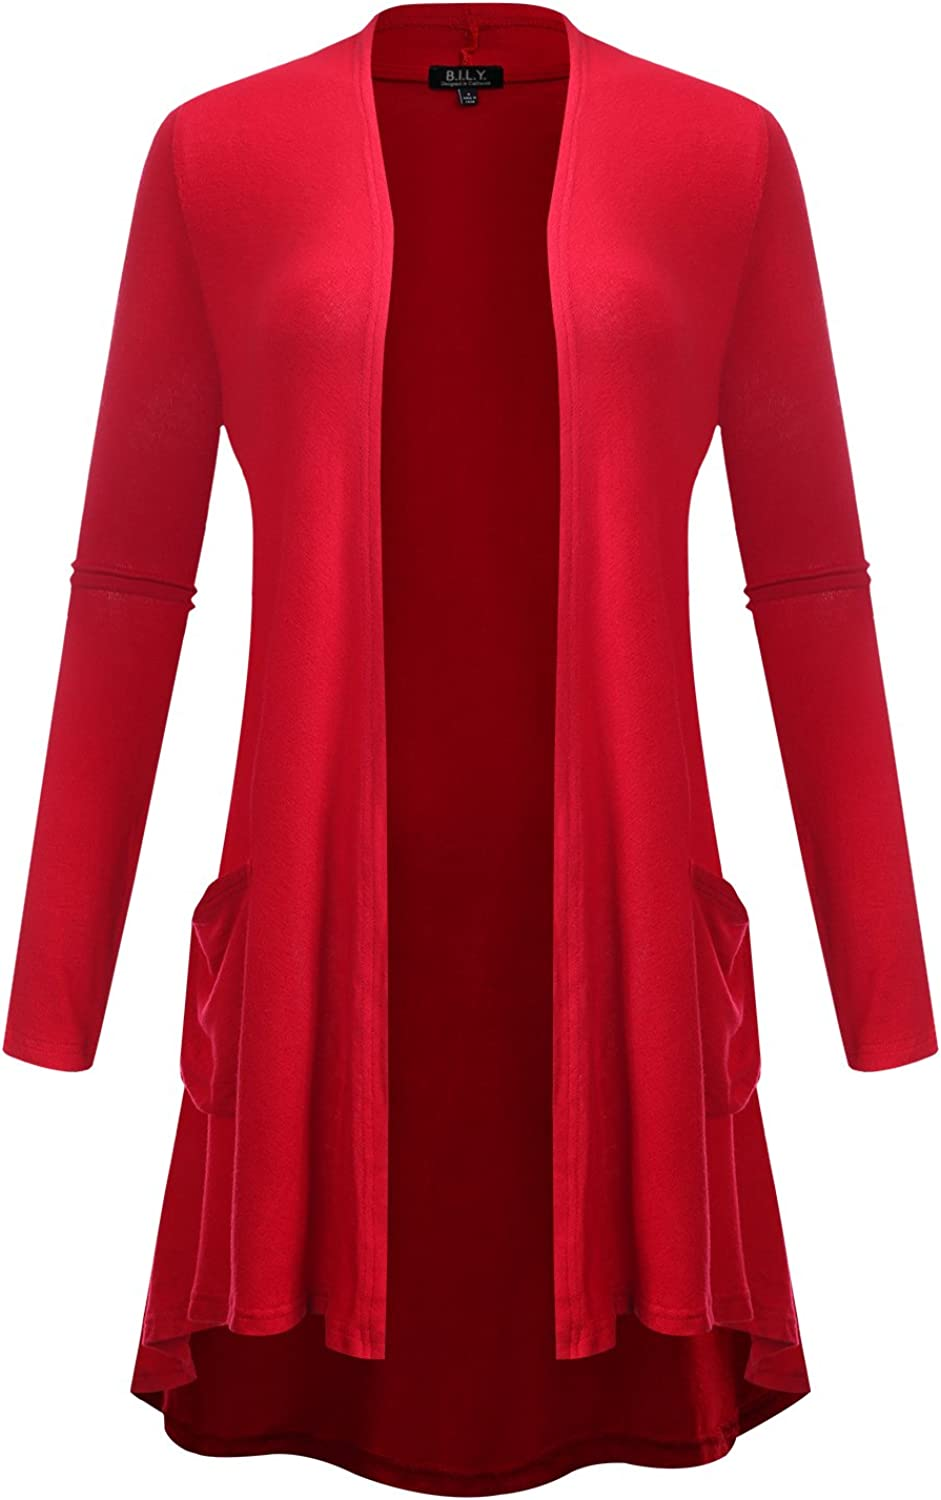 BILY Women's Open Front HighLow Long Sleeve Front Pockets Cardigan Red XXLarge